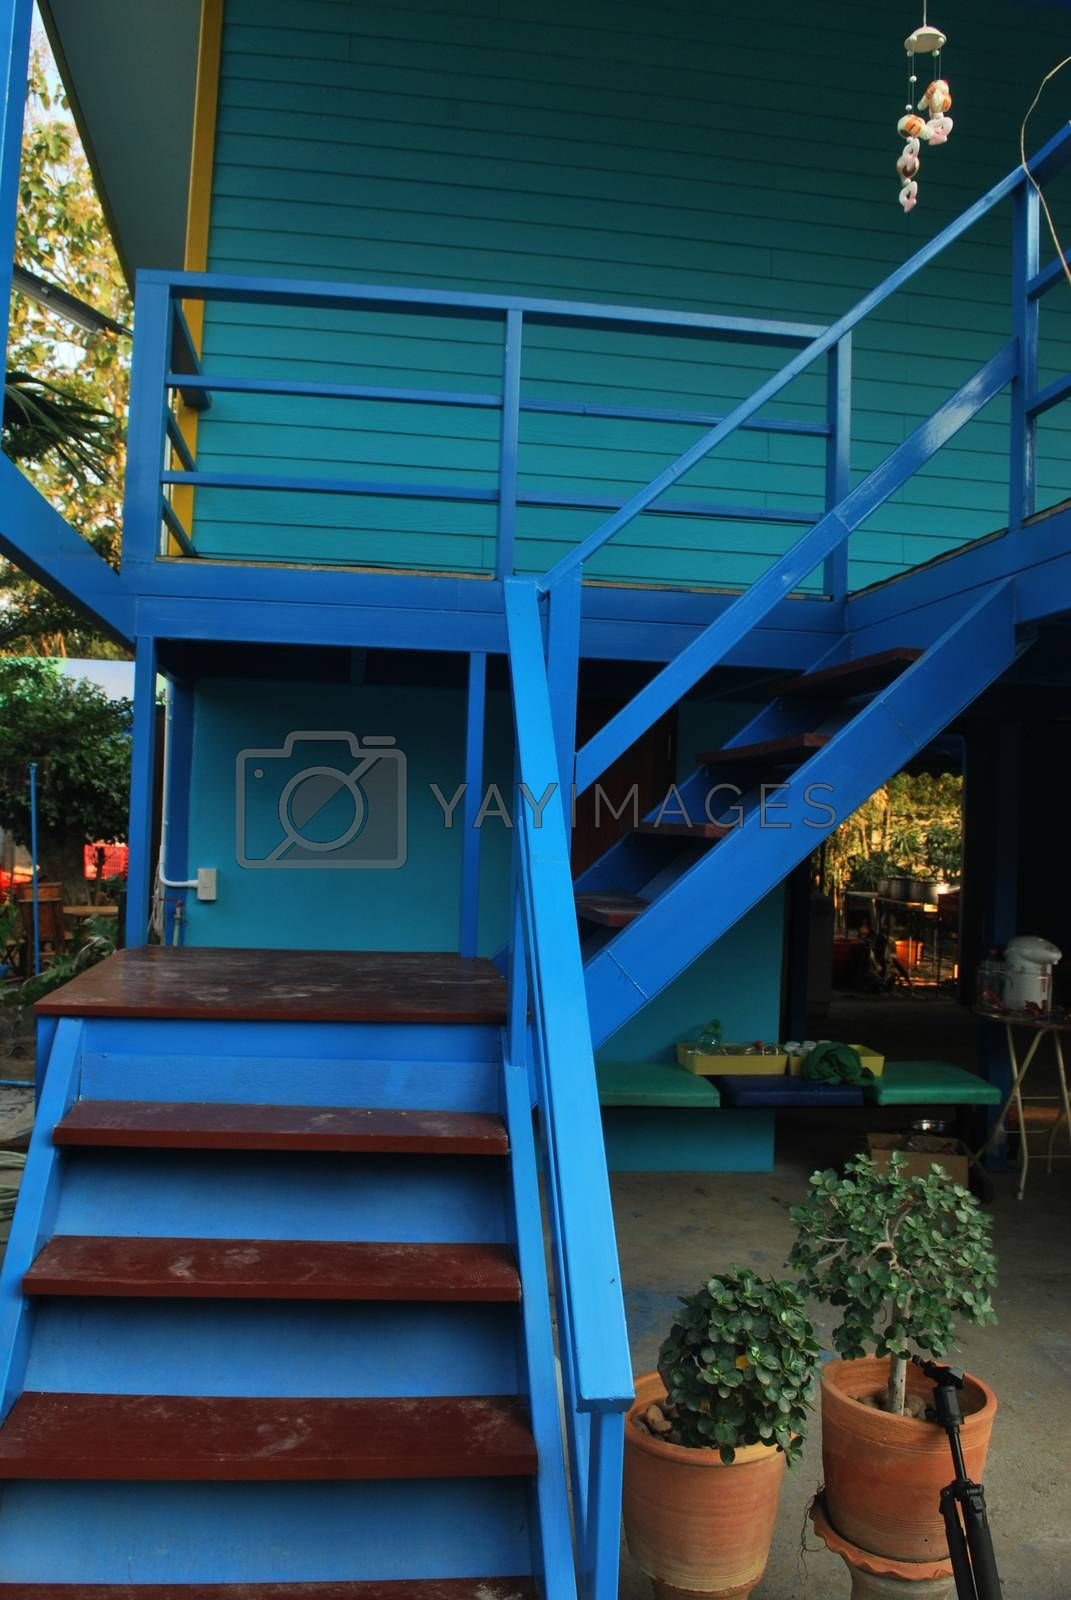 The stairway up to the stairs 2 is a rustproof painted steel frame.